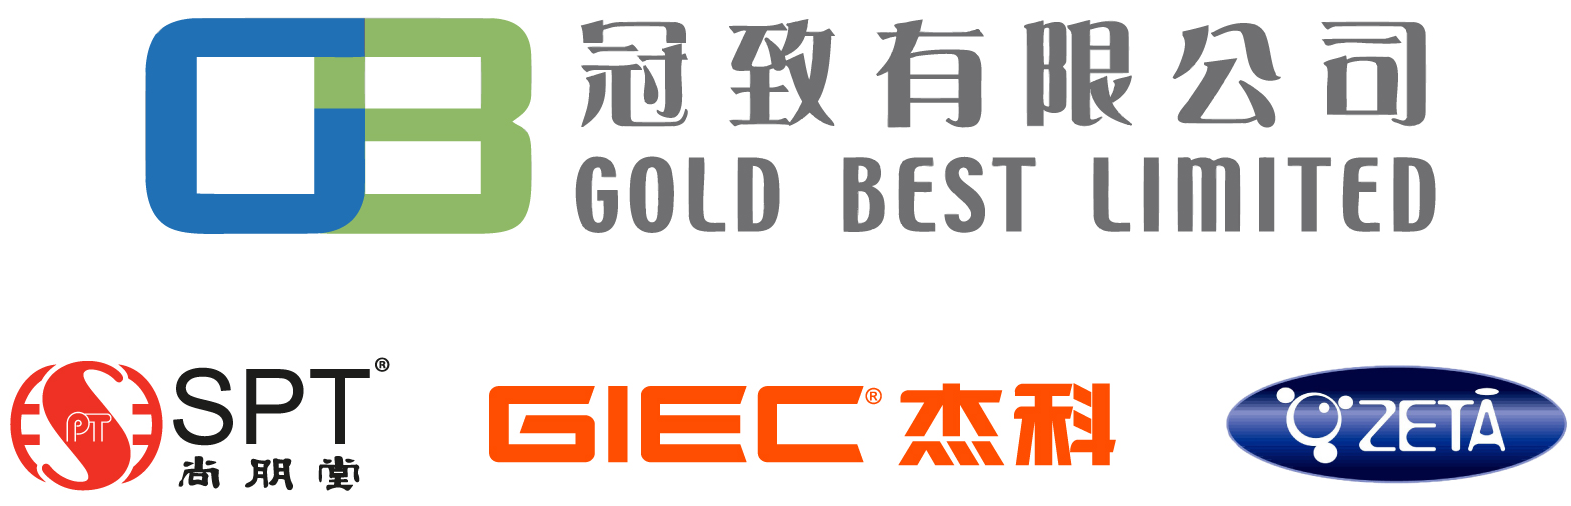 goldbest_logo